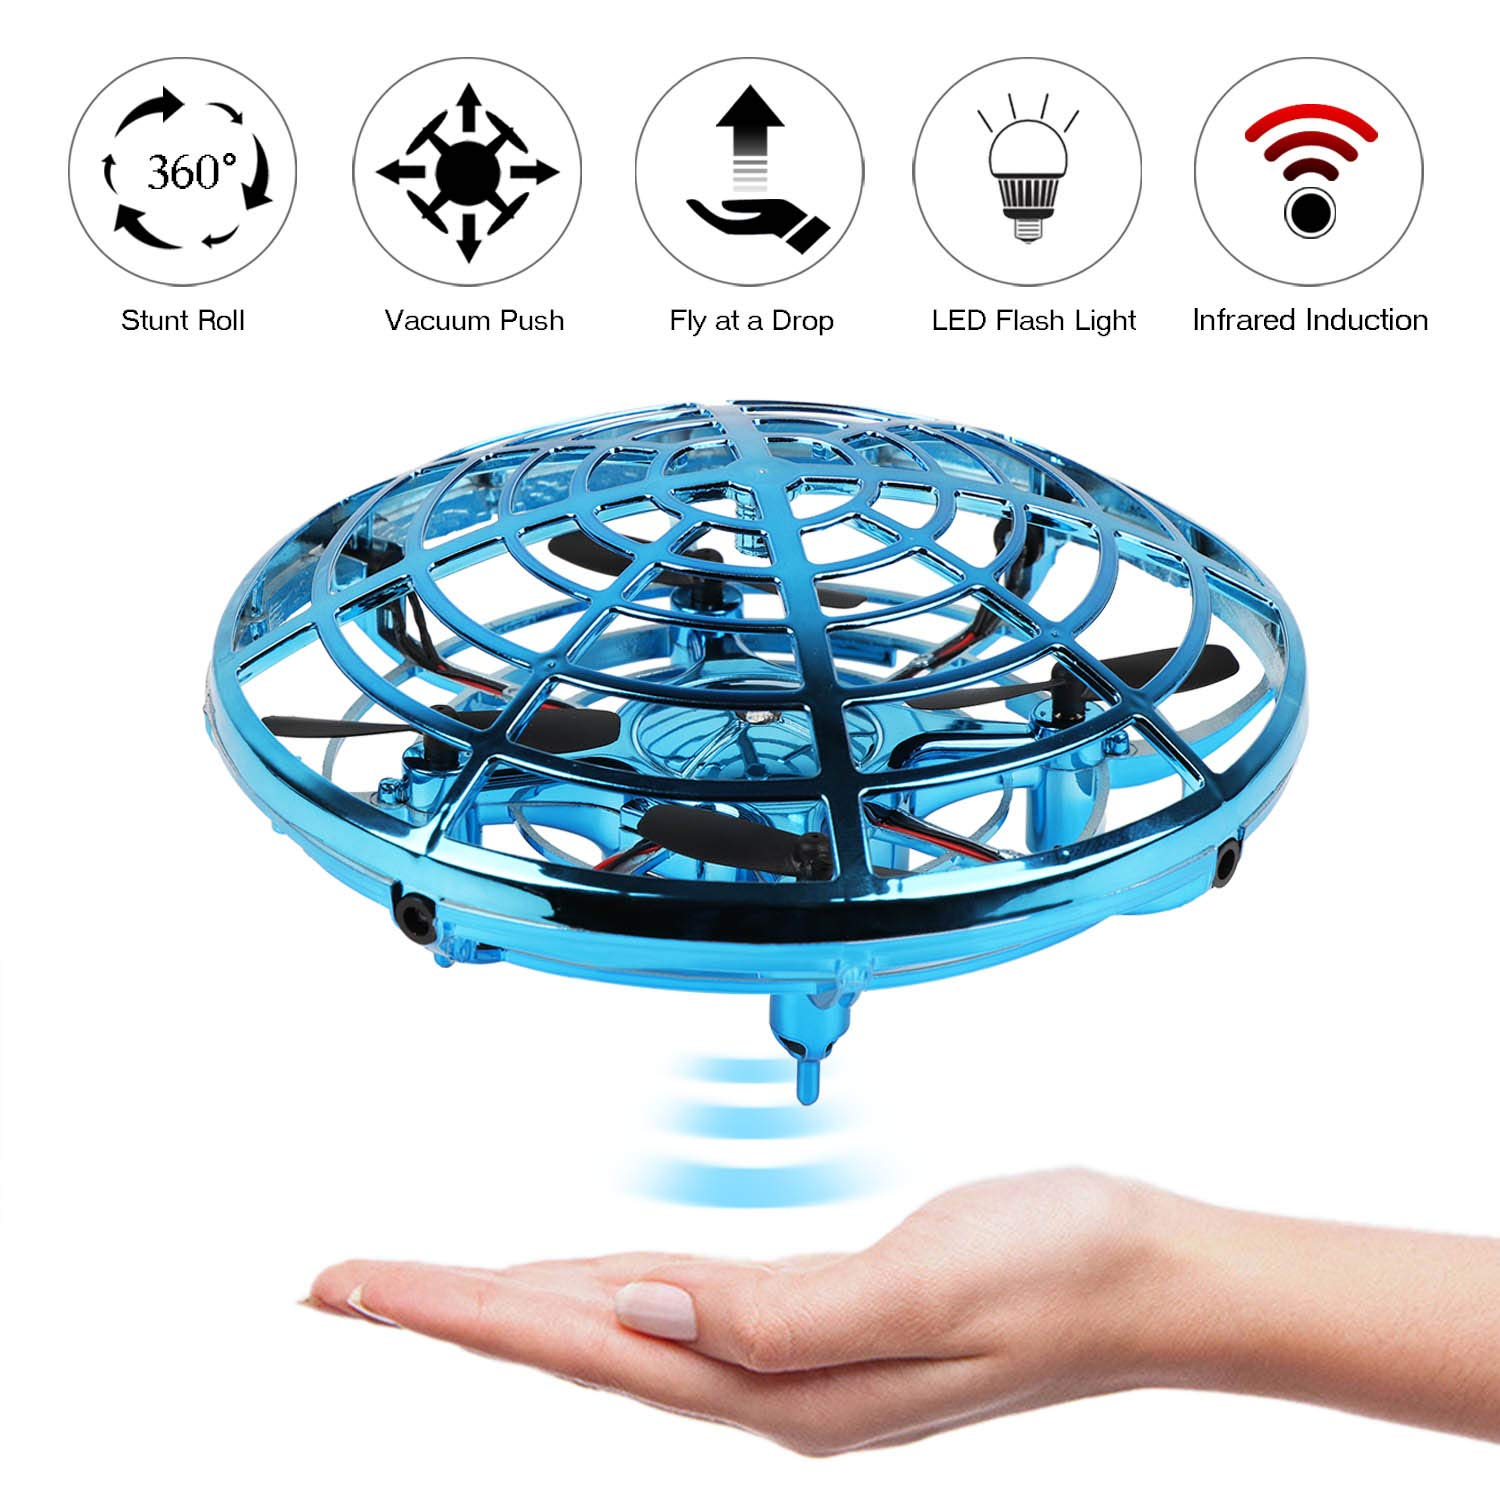 KETEP 2019 Upgrade Flying Toys Drones for Kids, Mini Drone Helicopter, Infrared Sensor Auto with 360° Rotating Hand Controlled Drone Toys for Boys or Girls by KETEP